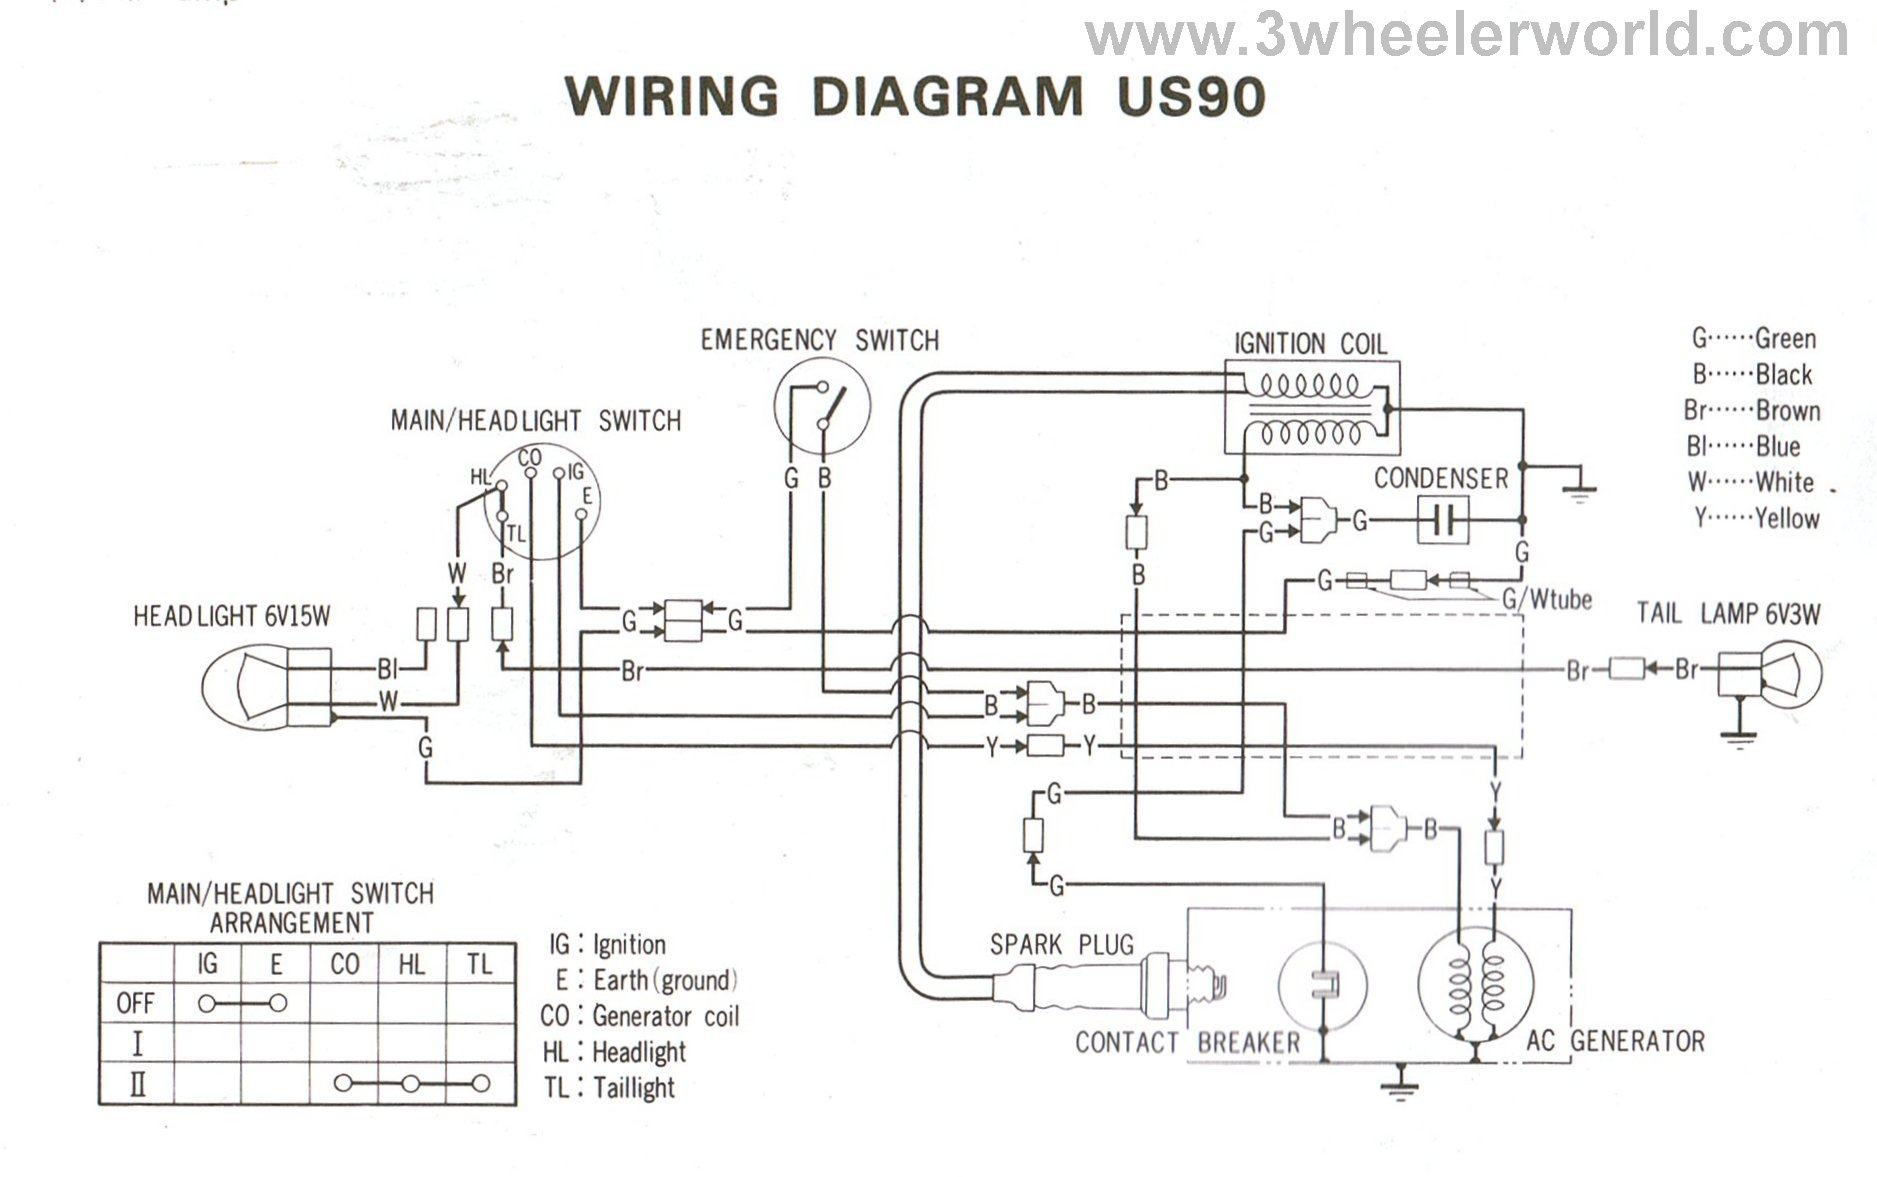 US90HM 3 wheeler world tech help honda wiring diagrams 2004 polaris sportsman 90 wiring diagram at mifinder.co